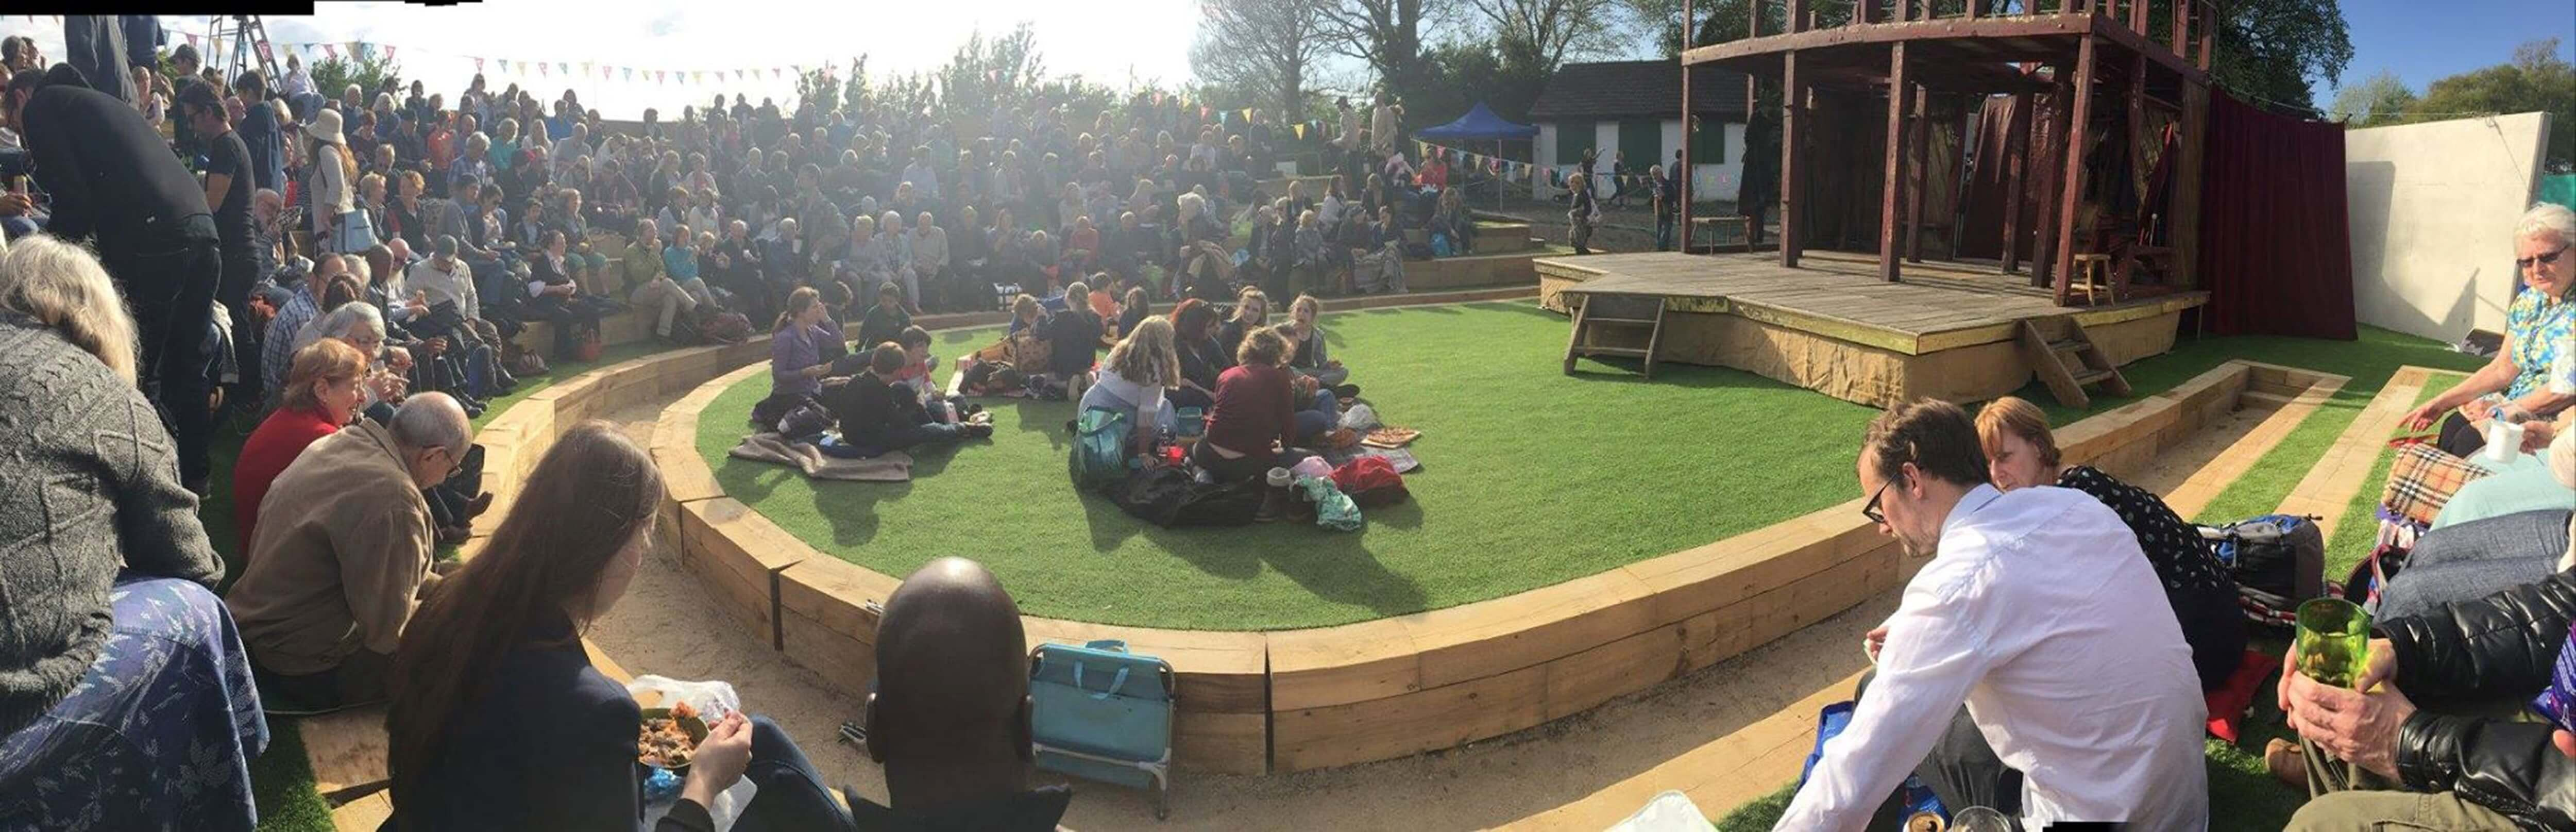 brighton open air theatre performance